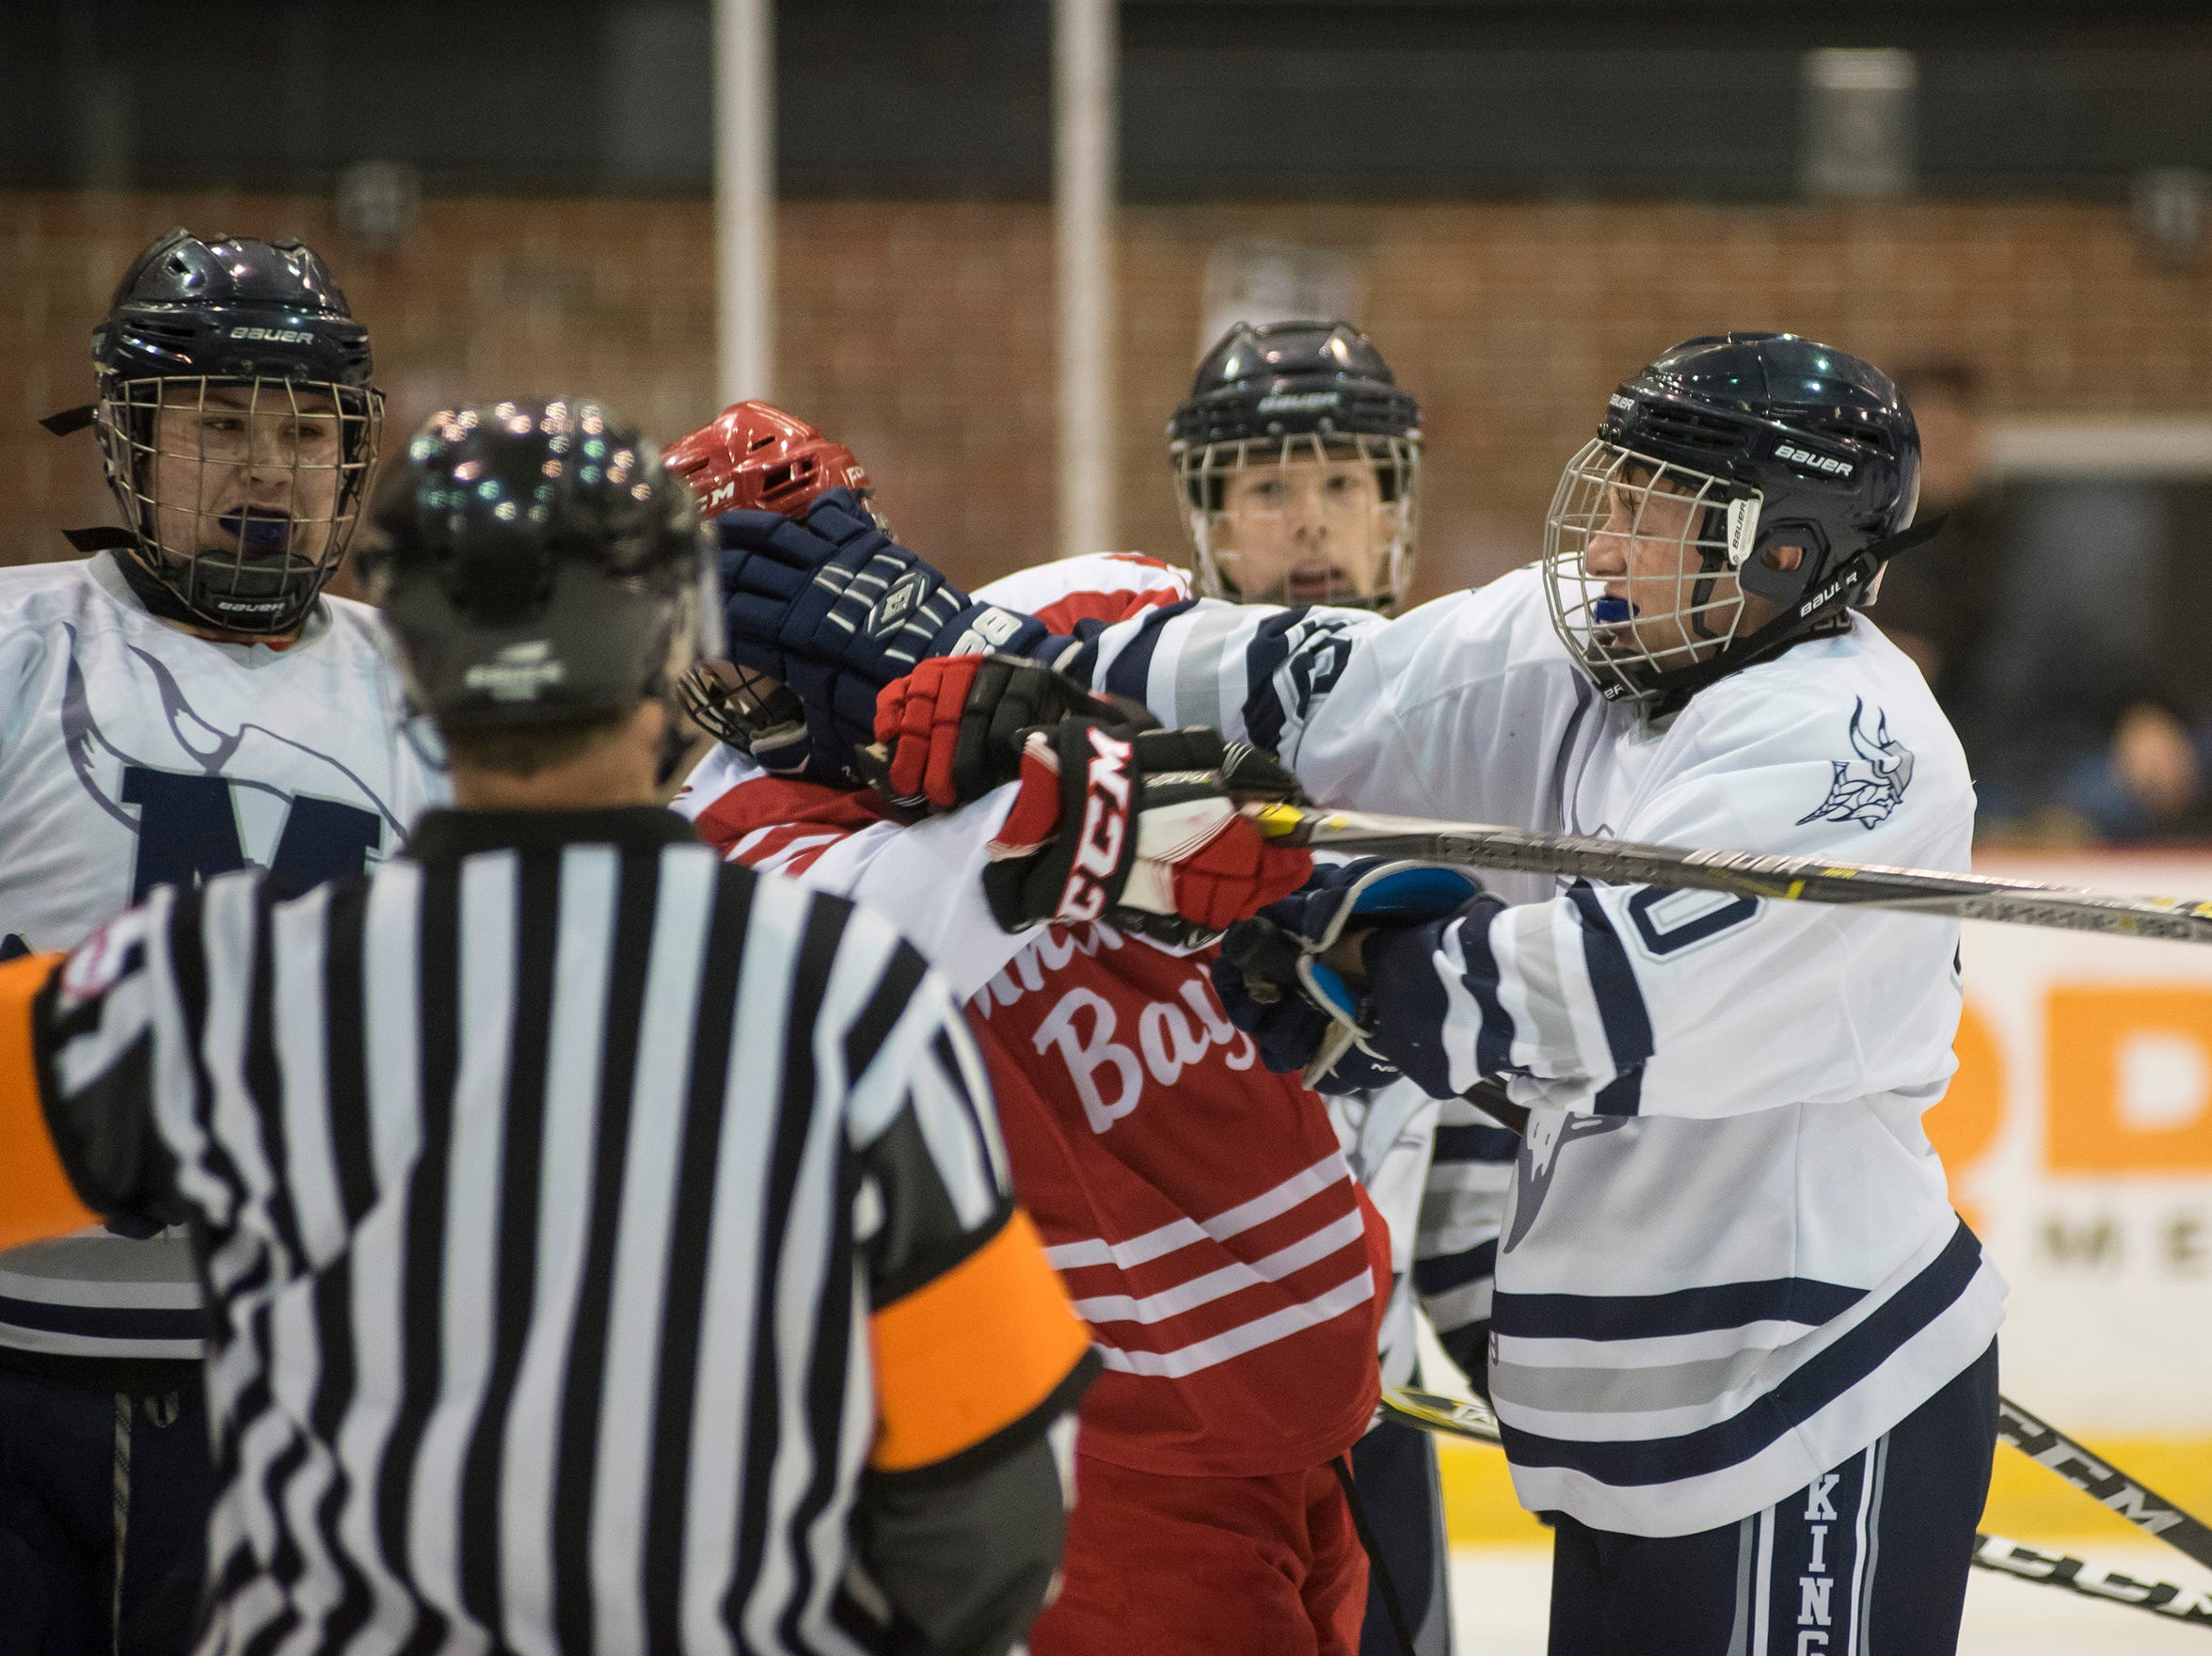 Marysville High School defense Hunter Glynn (right) reaches for an Anchor Bay player's facemask during the Larry Manz Holiday Hockey Tournament Friday, Nov. 23, 2018 at McMorran Arena.